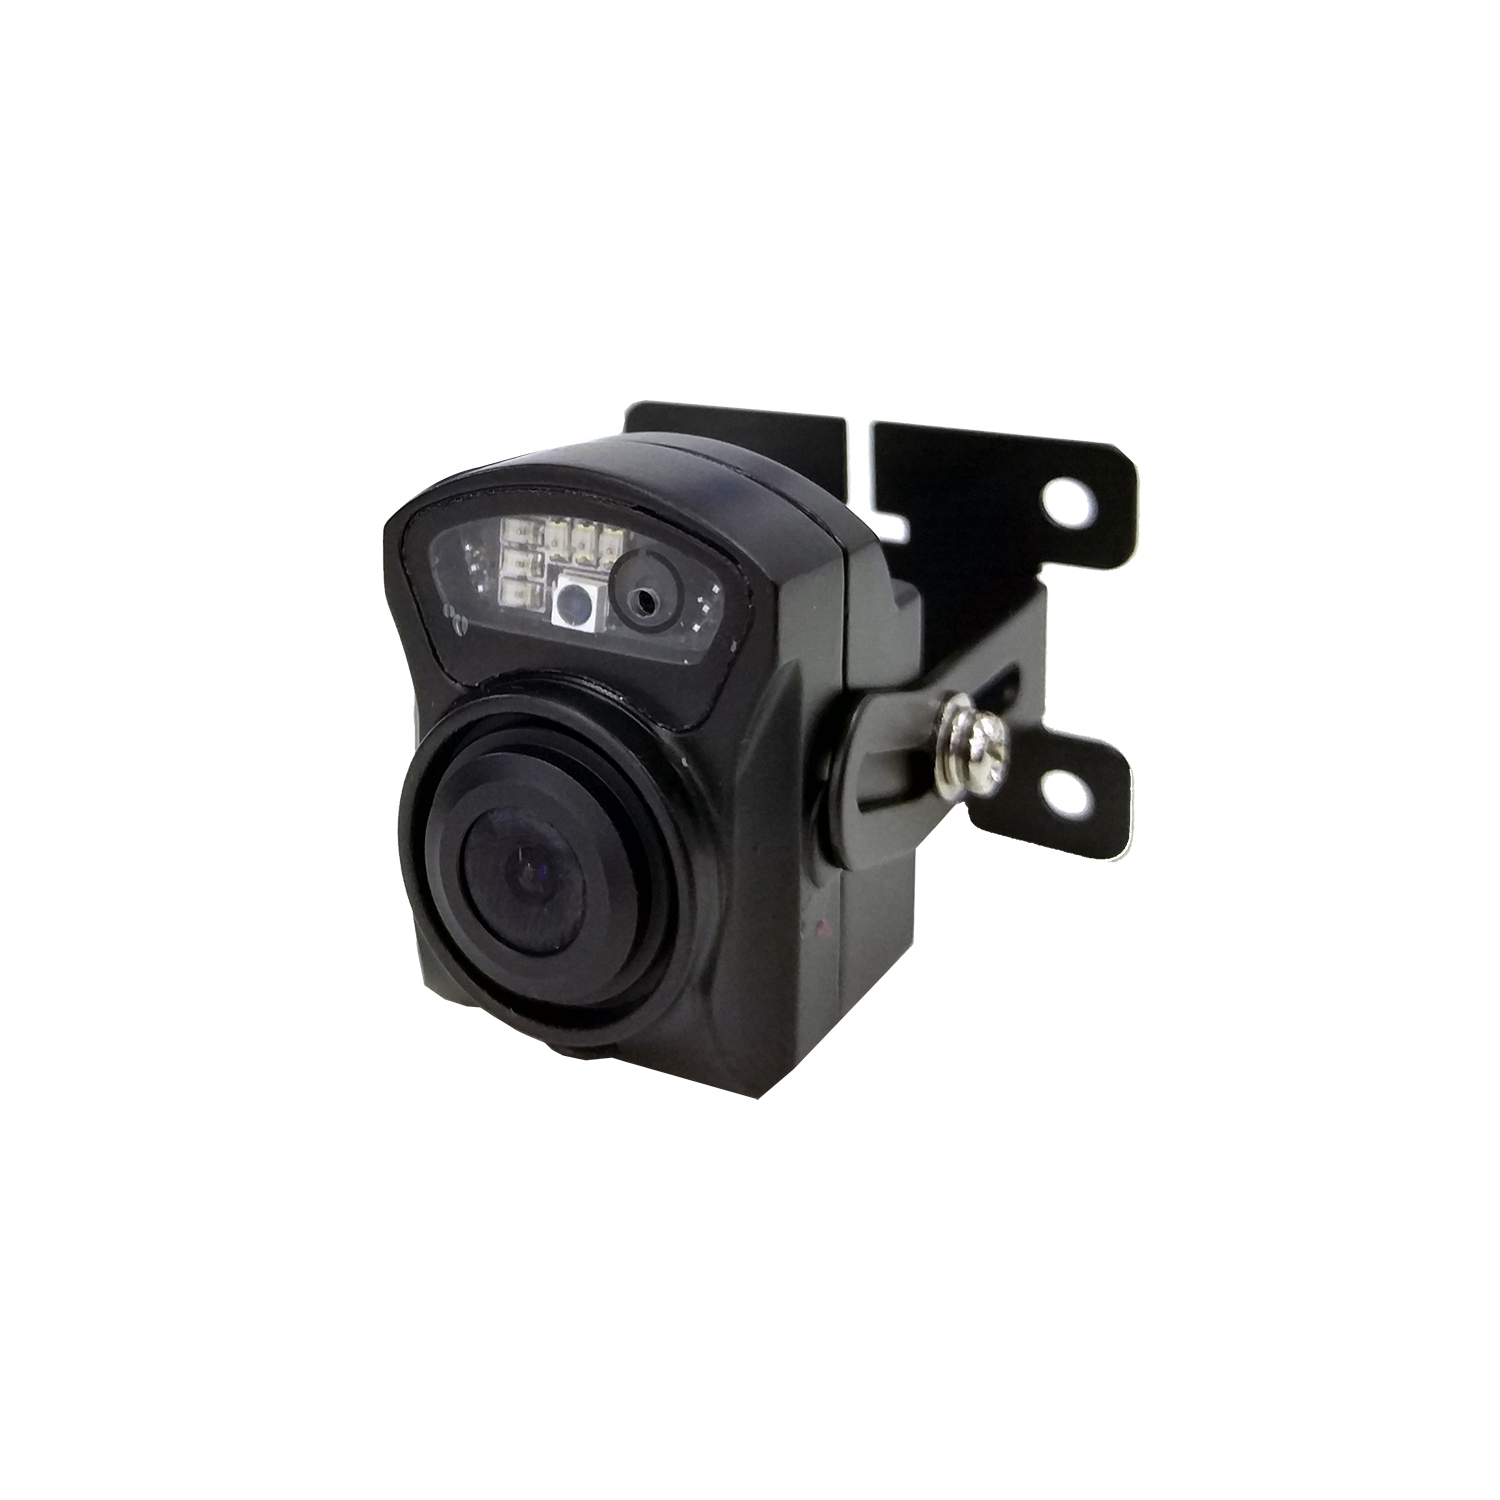 1.3MP/2.0MP AHD Vehicle mini Camera with IR night vision for bus/truck/taxi/car